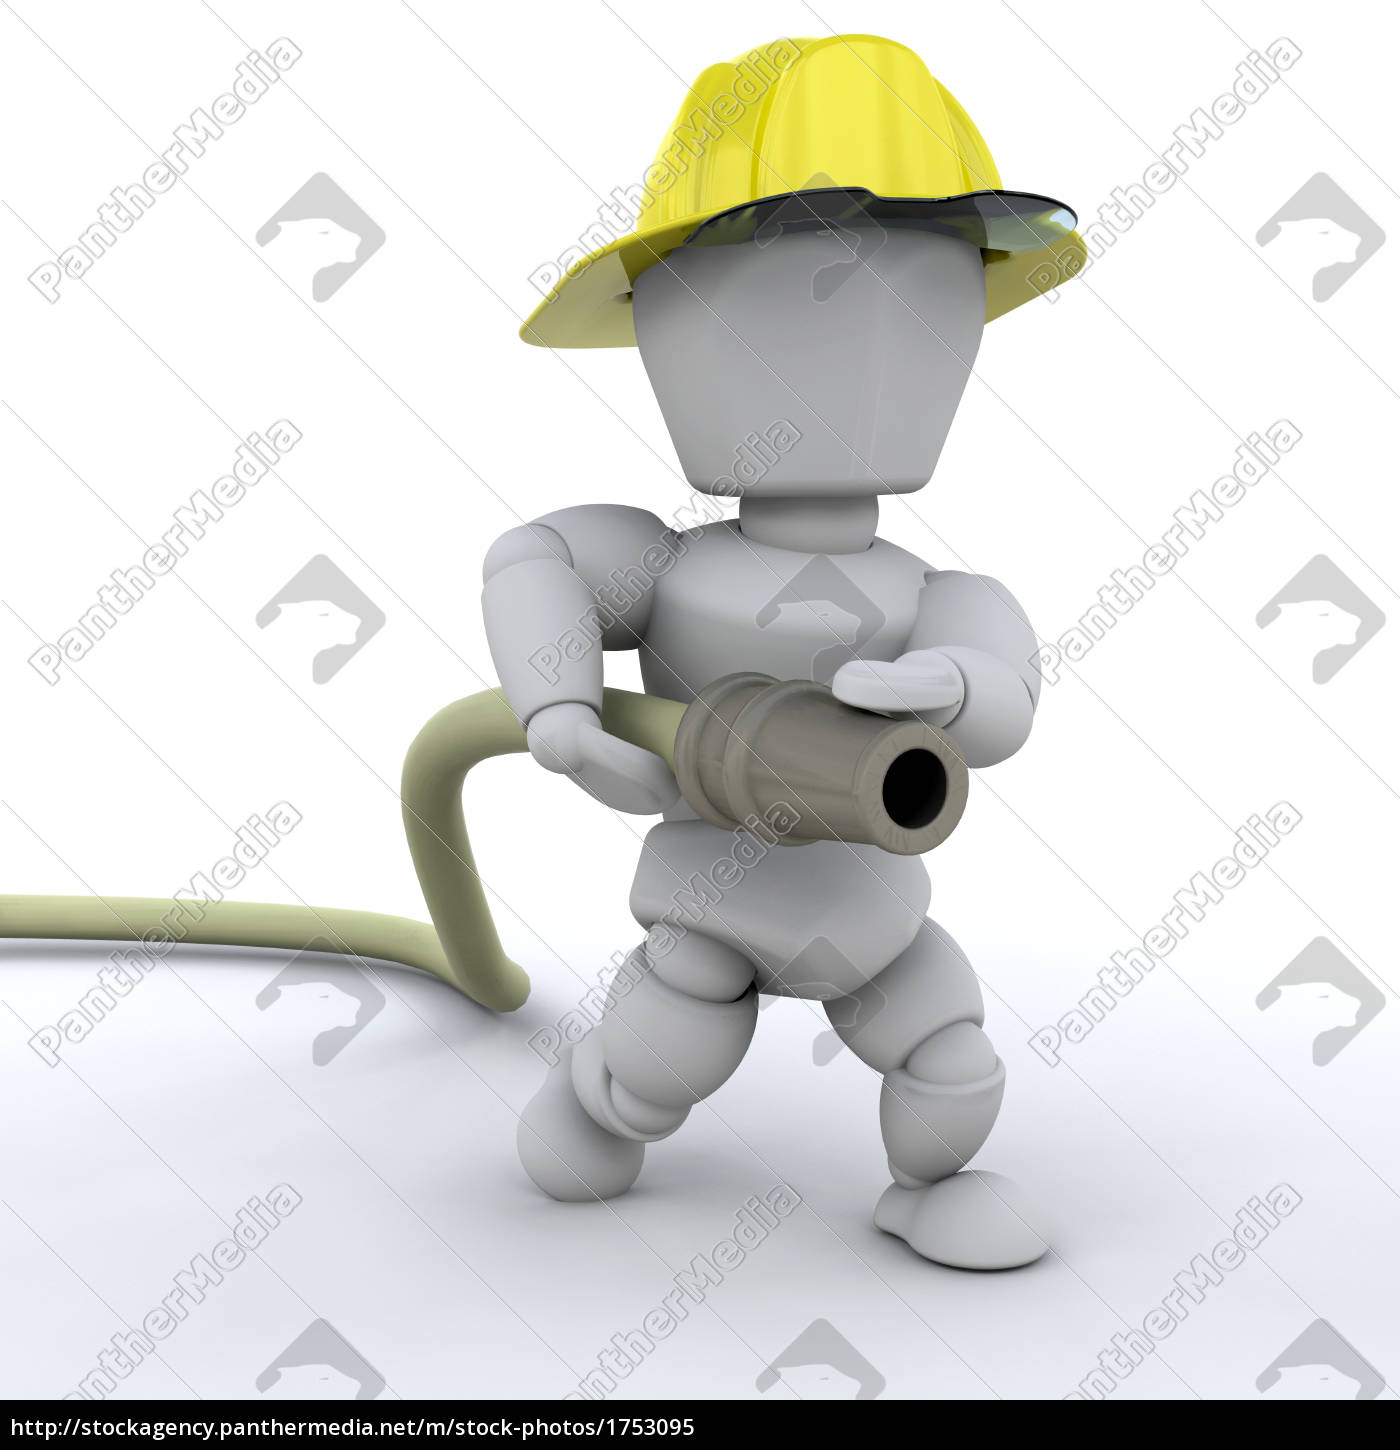 object, hat, person, hose, fireman, hero - 1753095